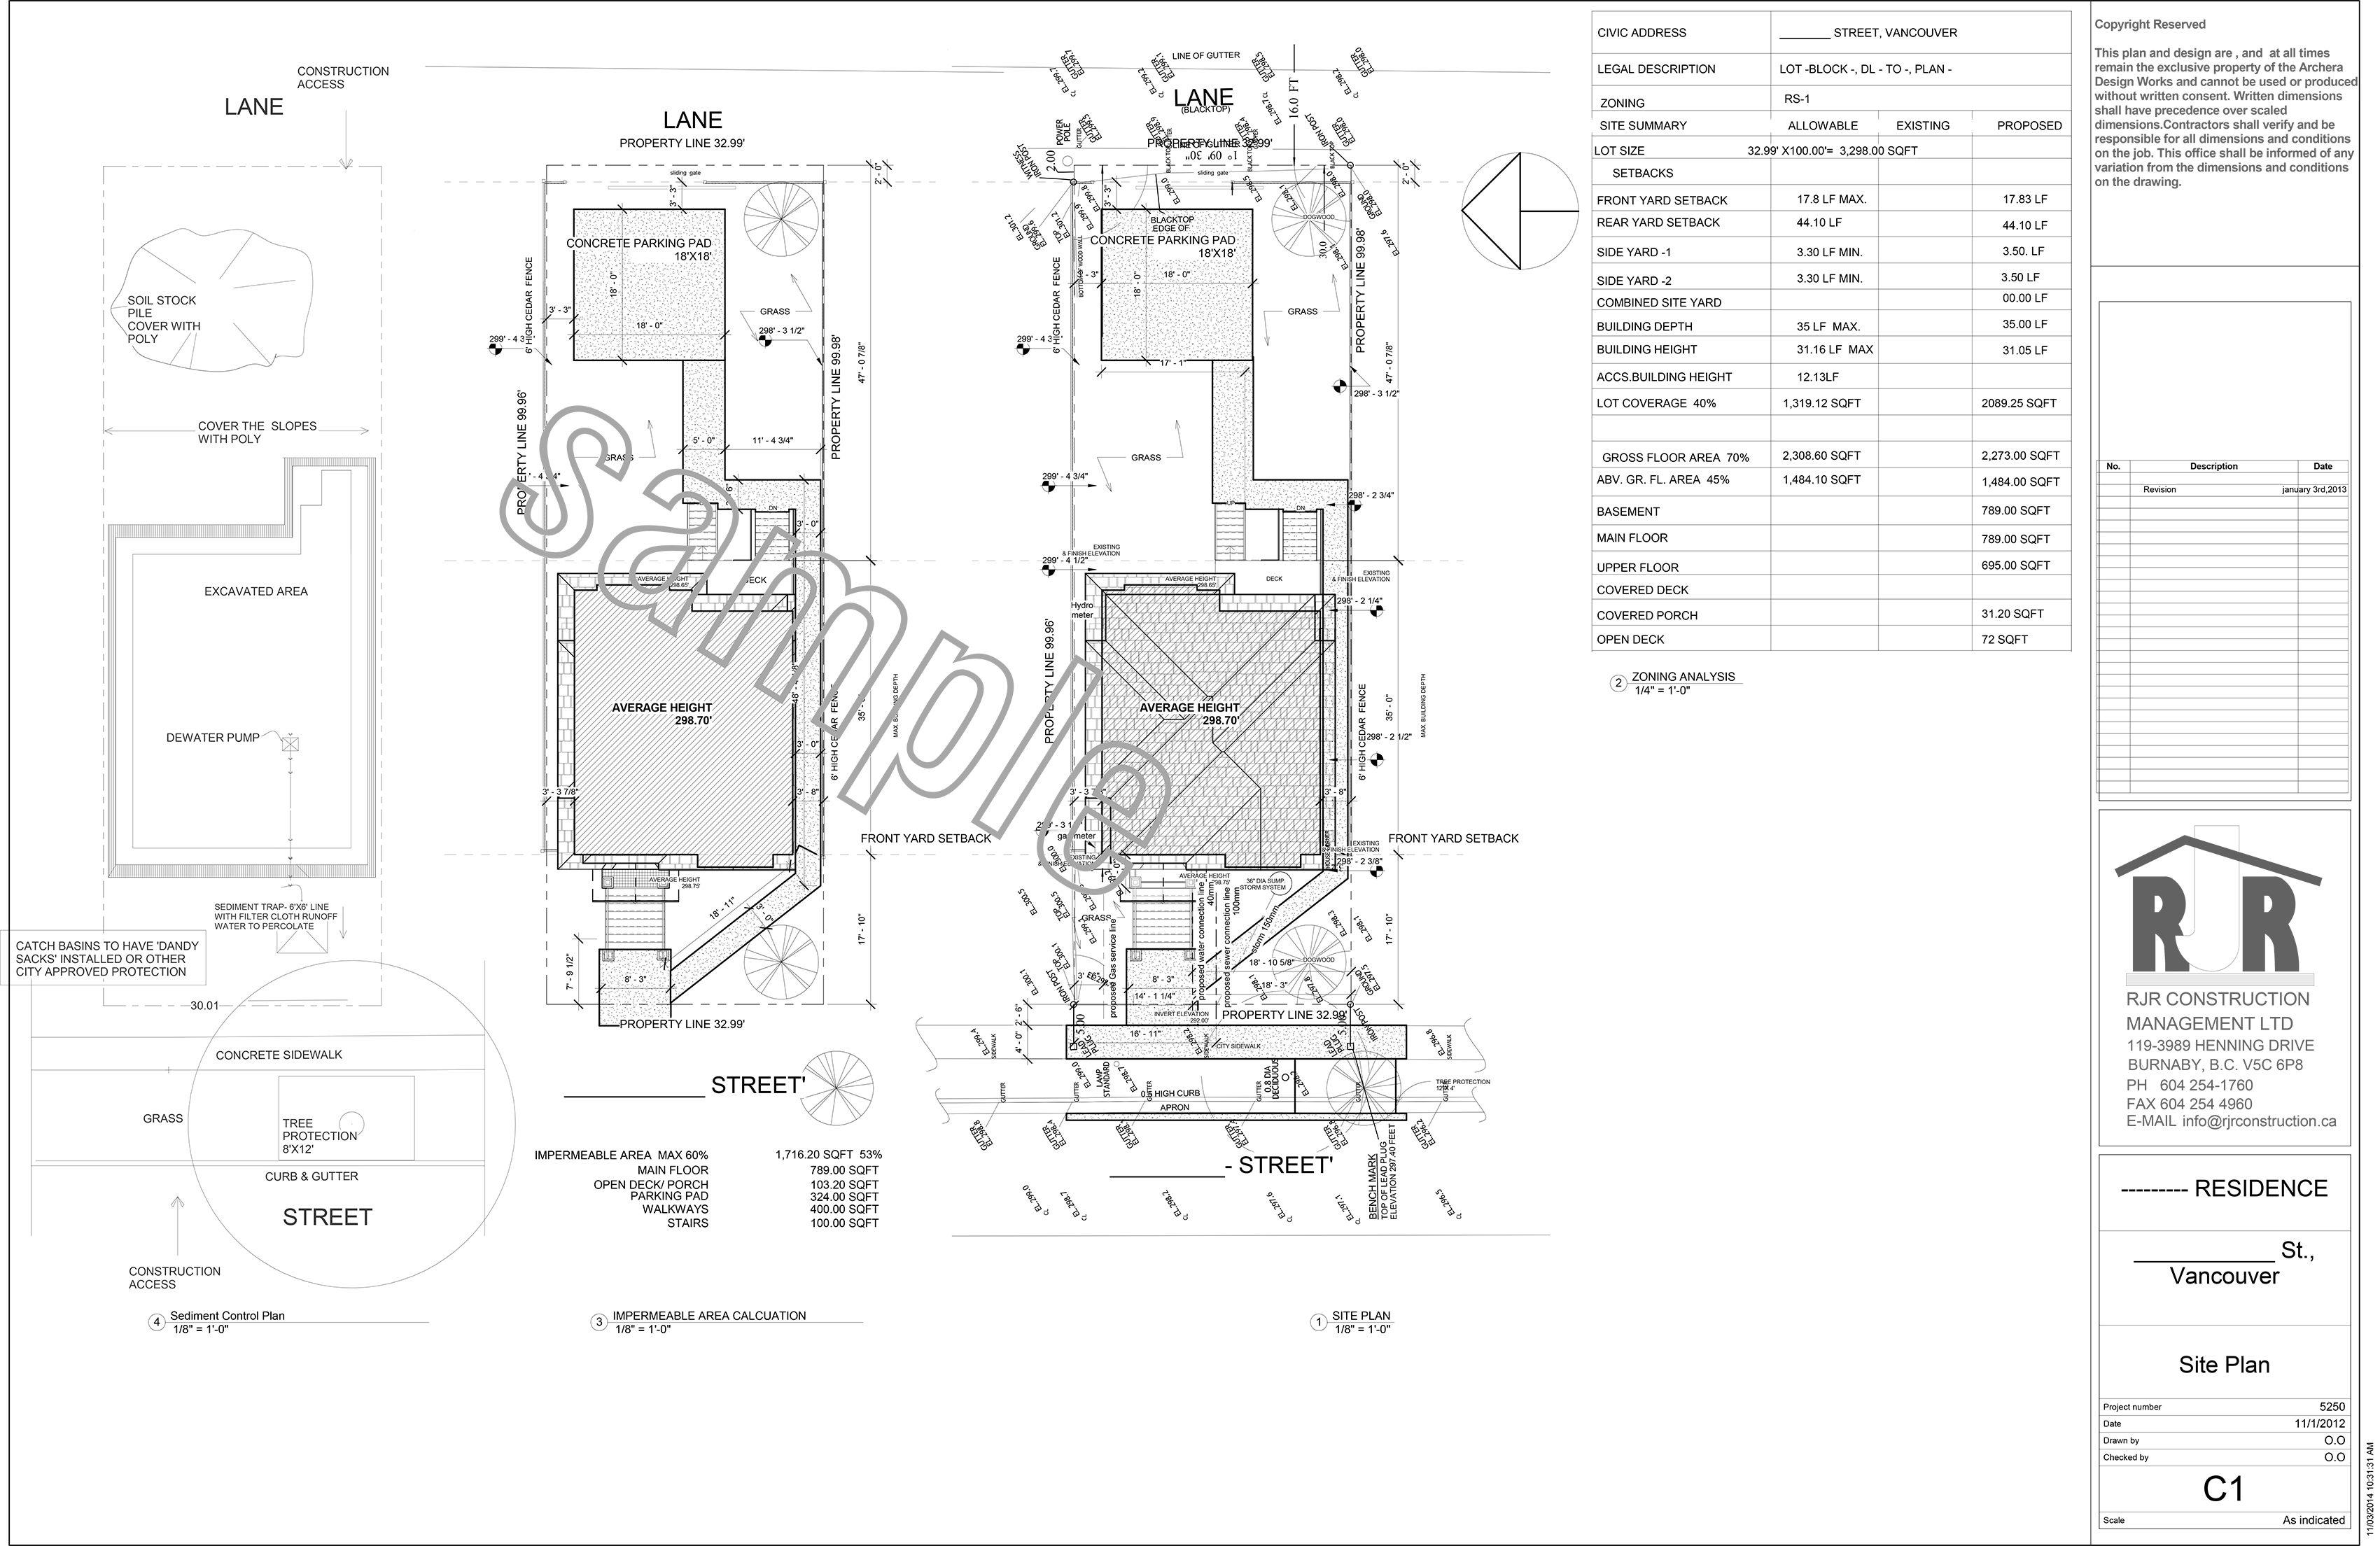 sample safety plan – Sample Site Plan